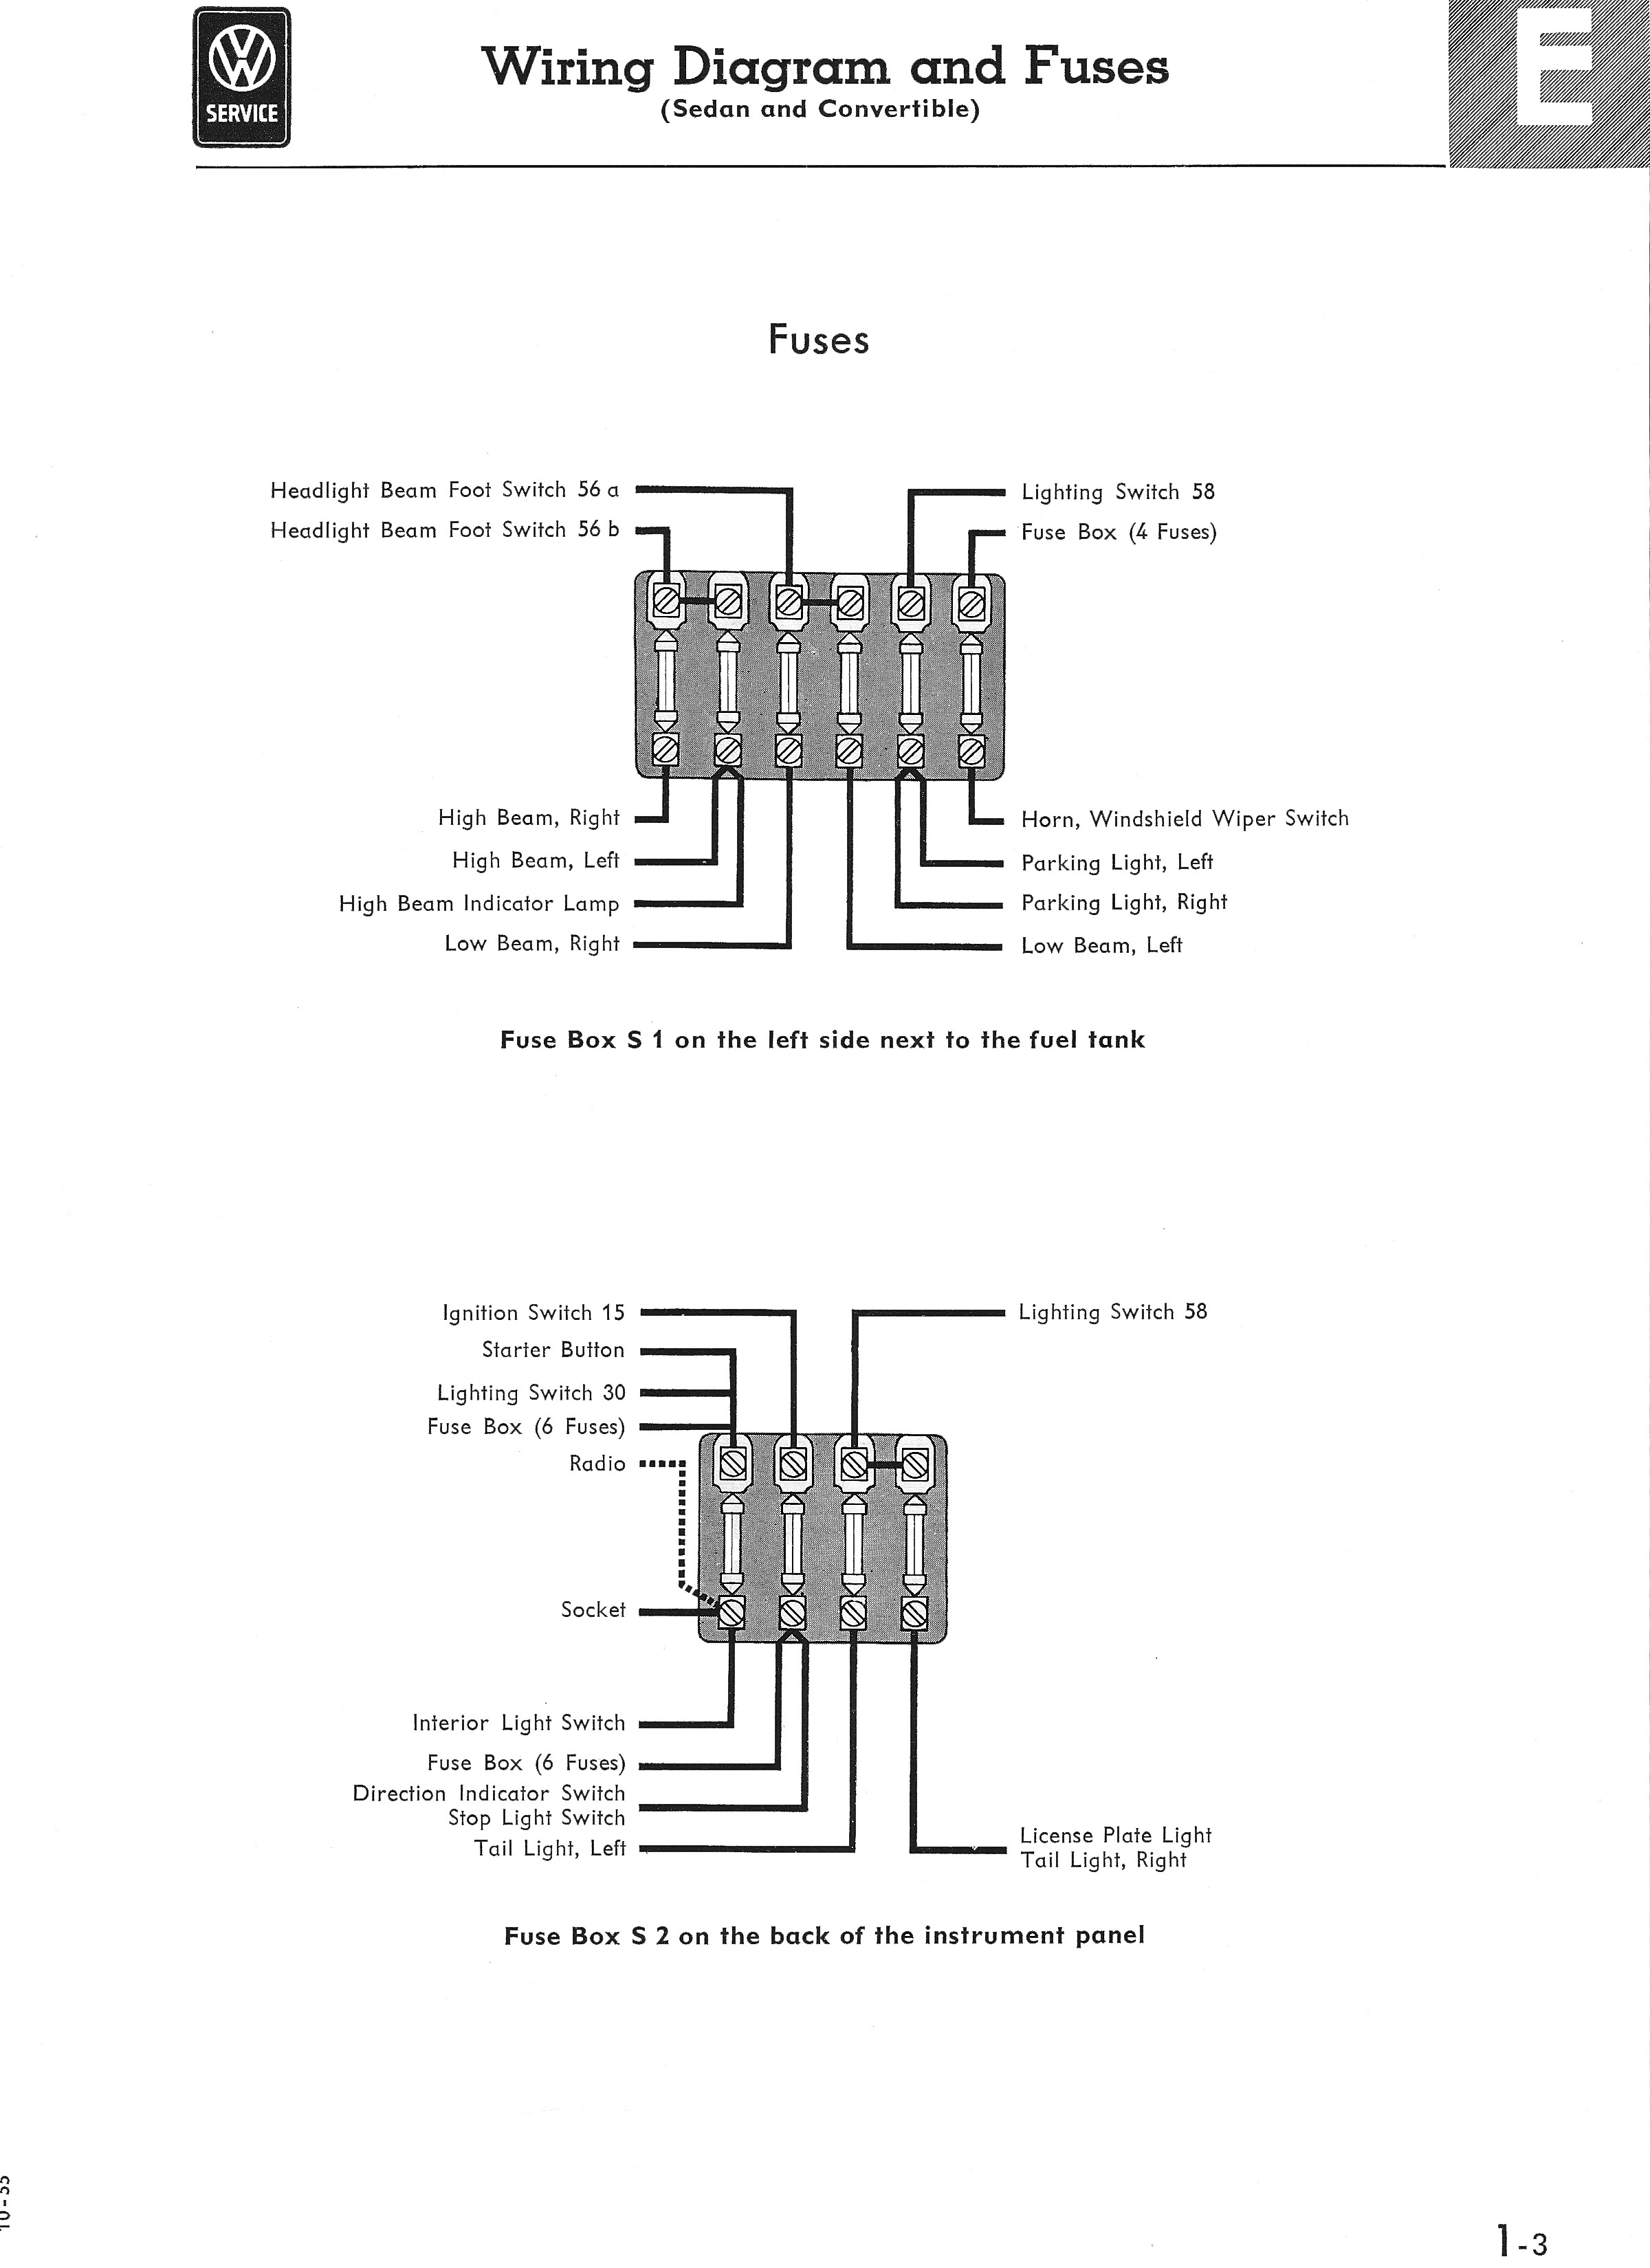 Type 1 Wiring Diagrams 2003 Dodge Ram 1500 Plug Diagram